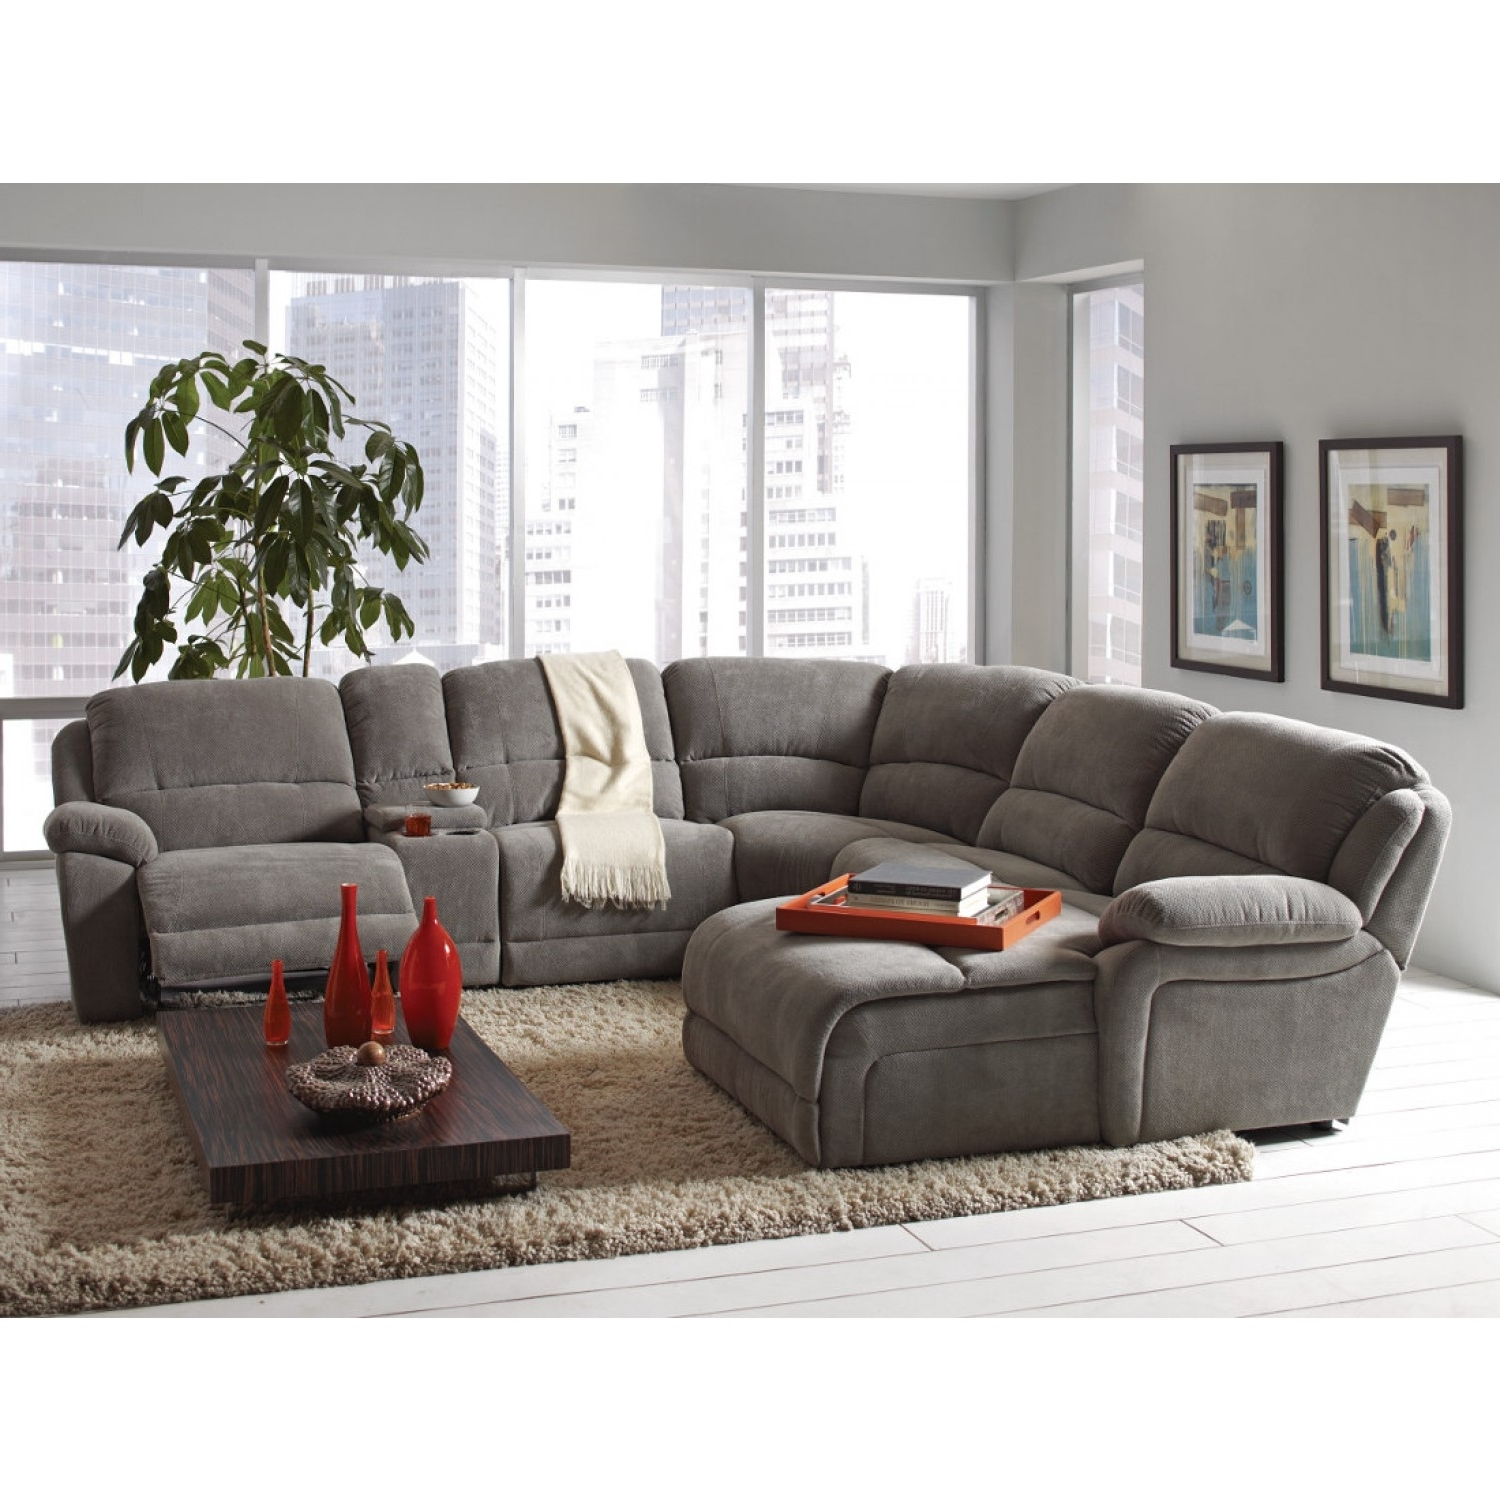 Most Recently Released Kansas City Sectional Sofas Throughout Coaster Mackenzie Silver 6 Piece Reclining Sectional Sofa With (View 6 of 20)